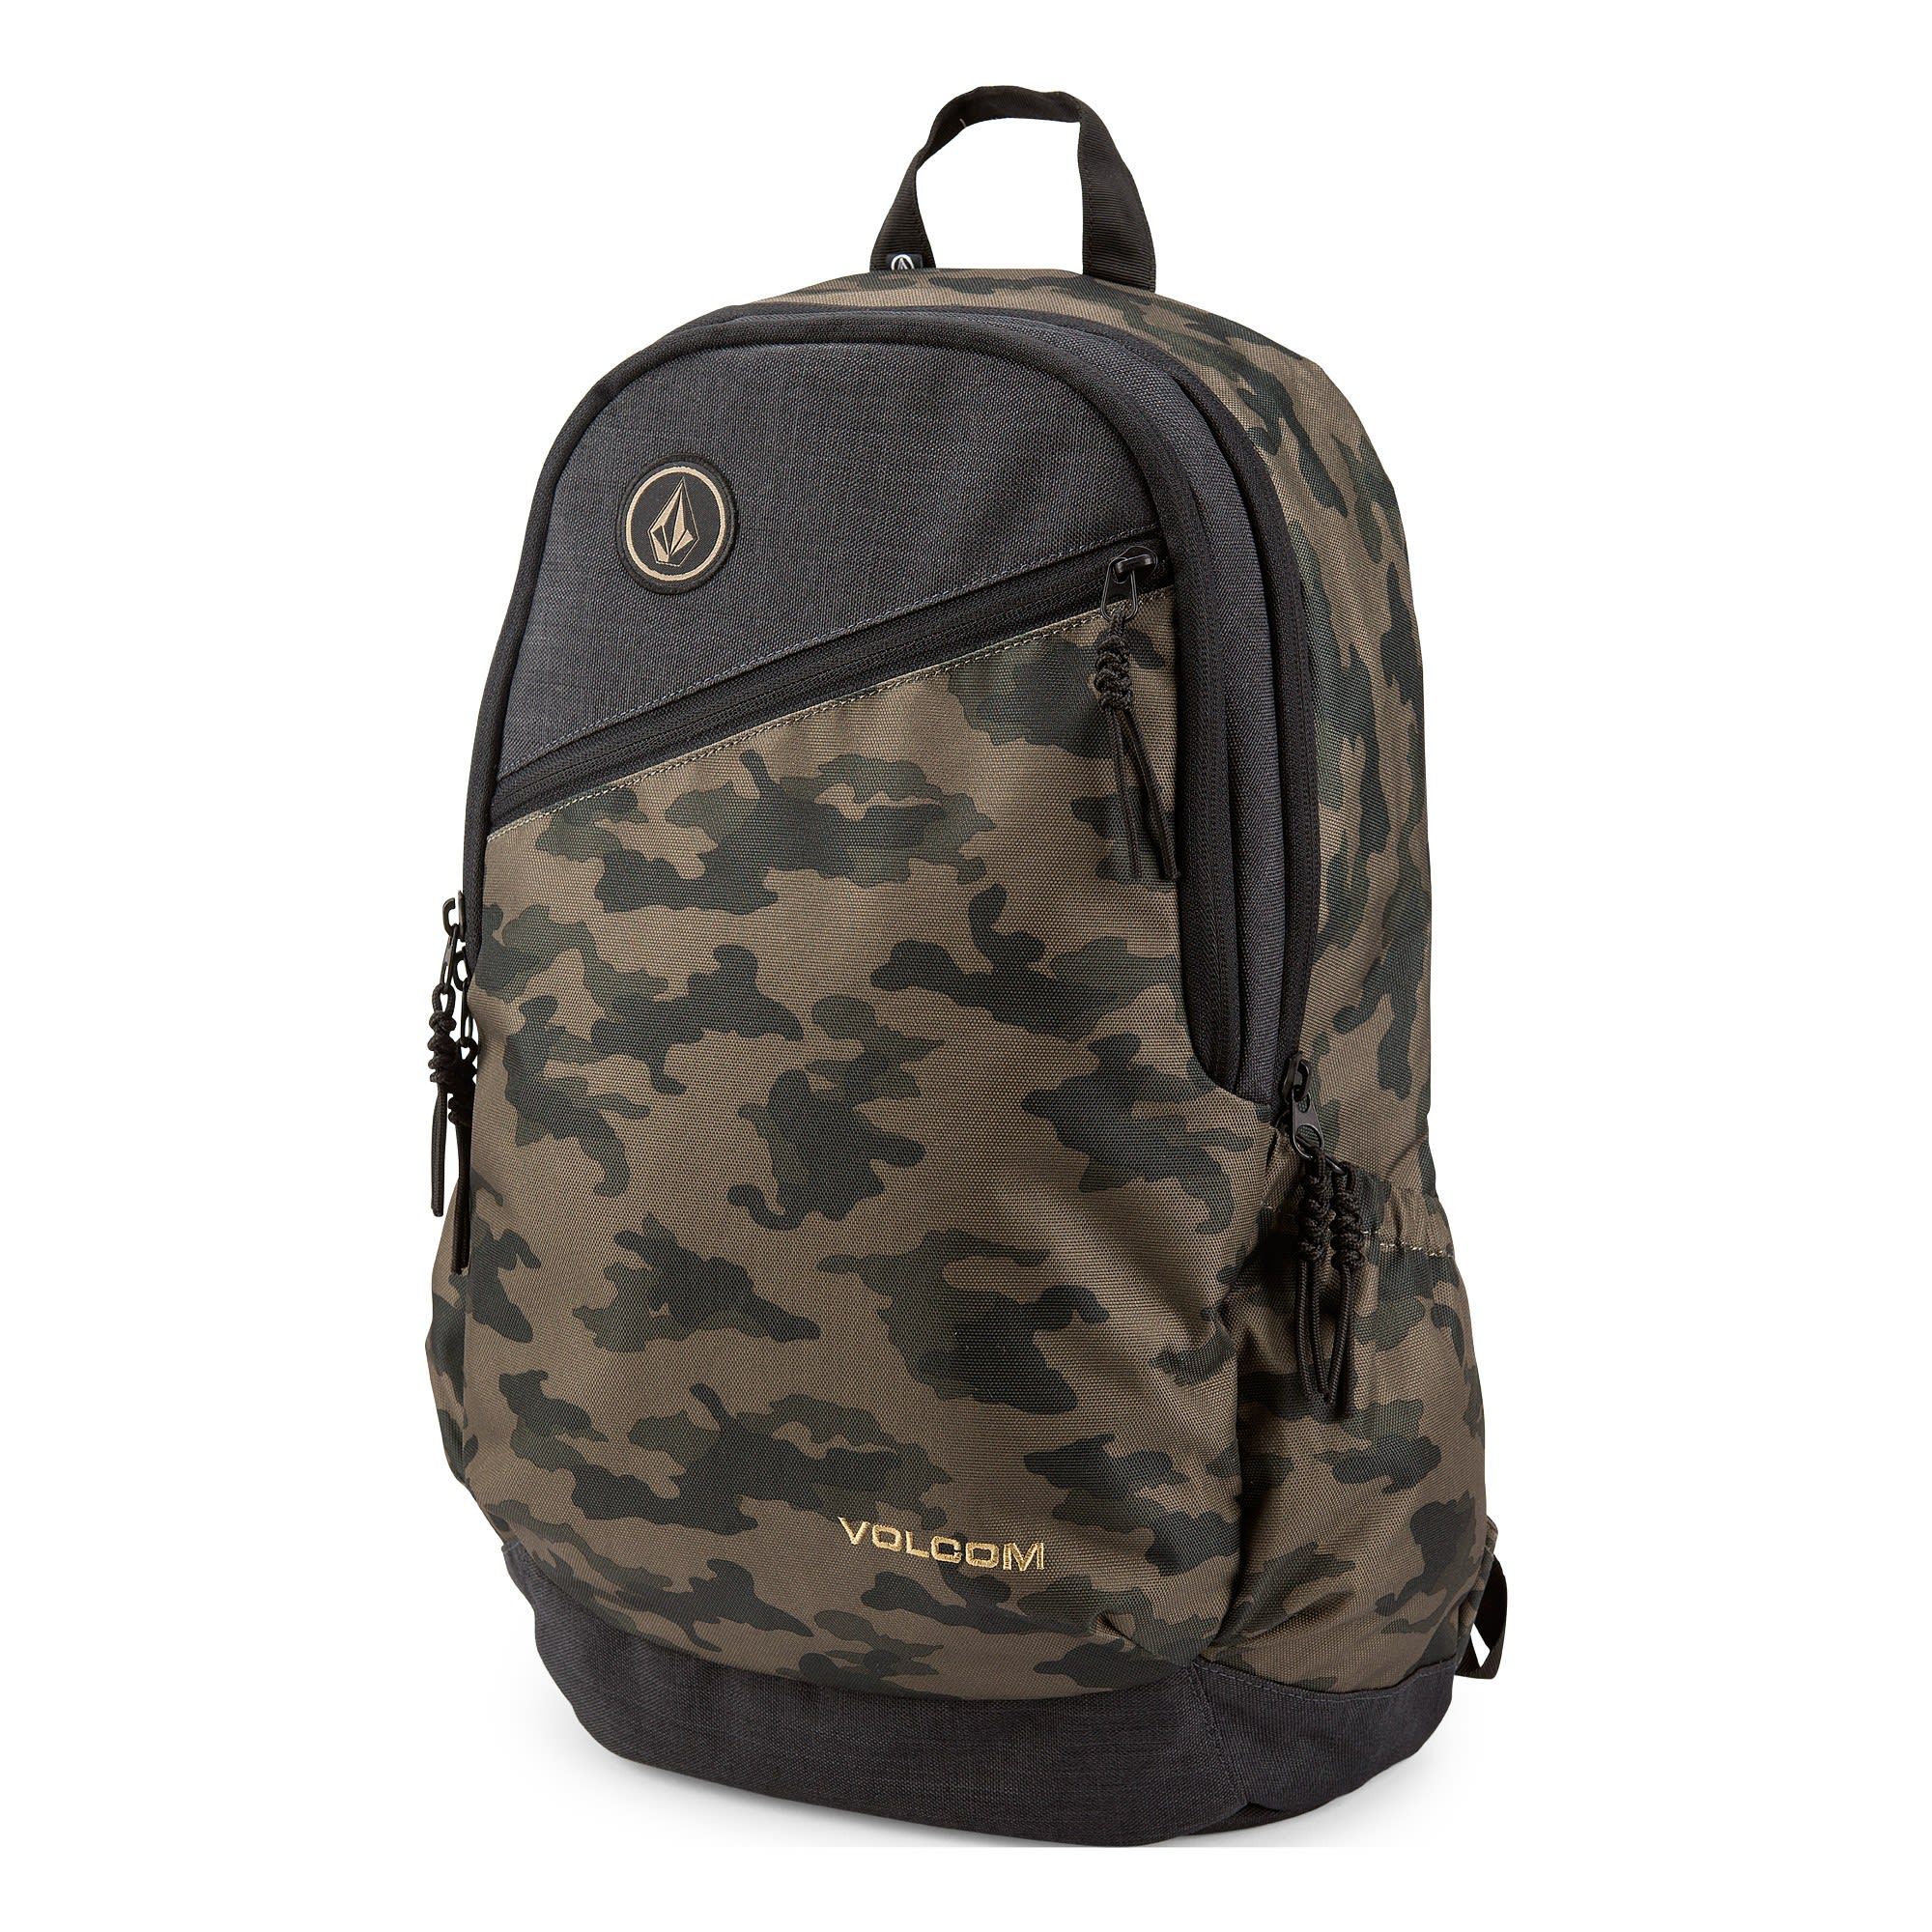 Volcom Substrate Backpack Thumbnail 1